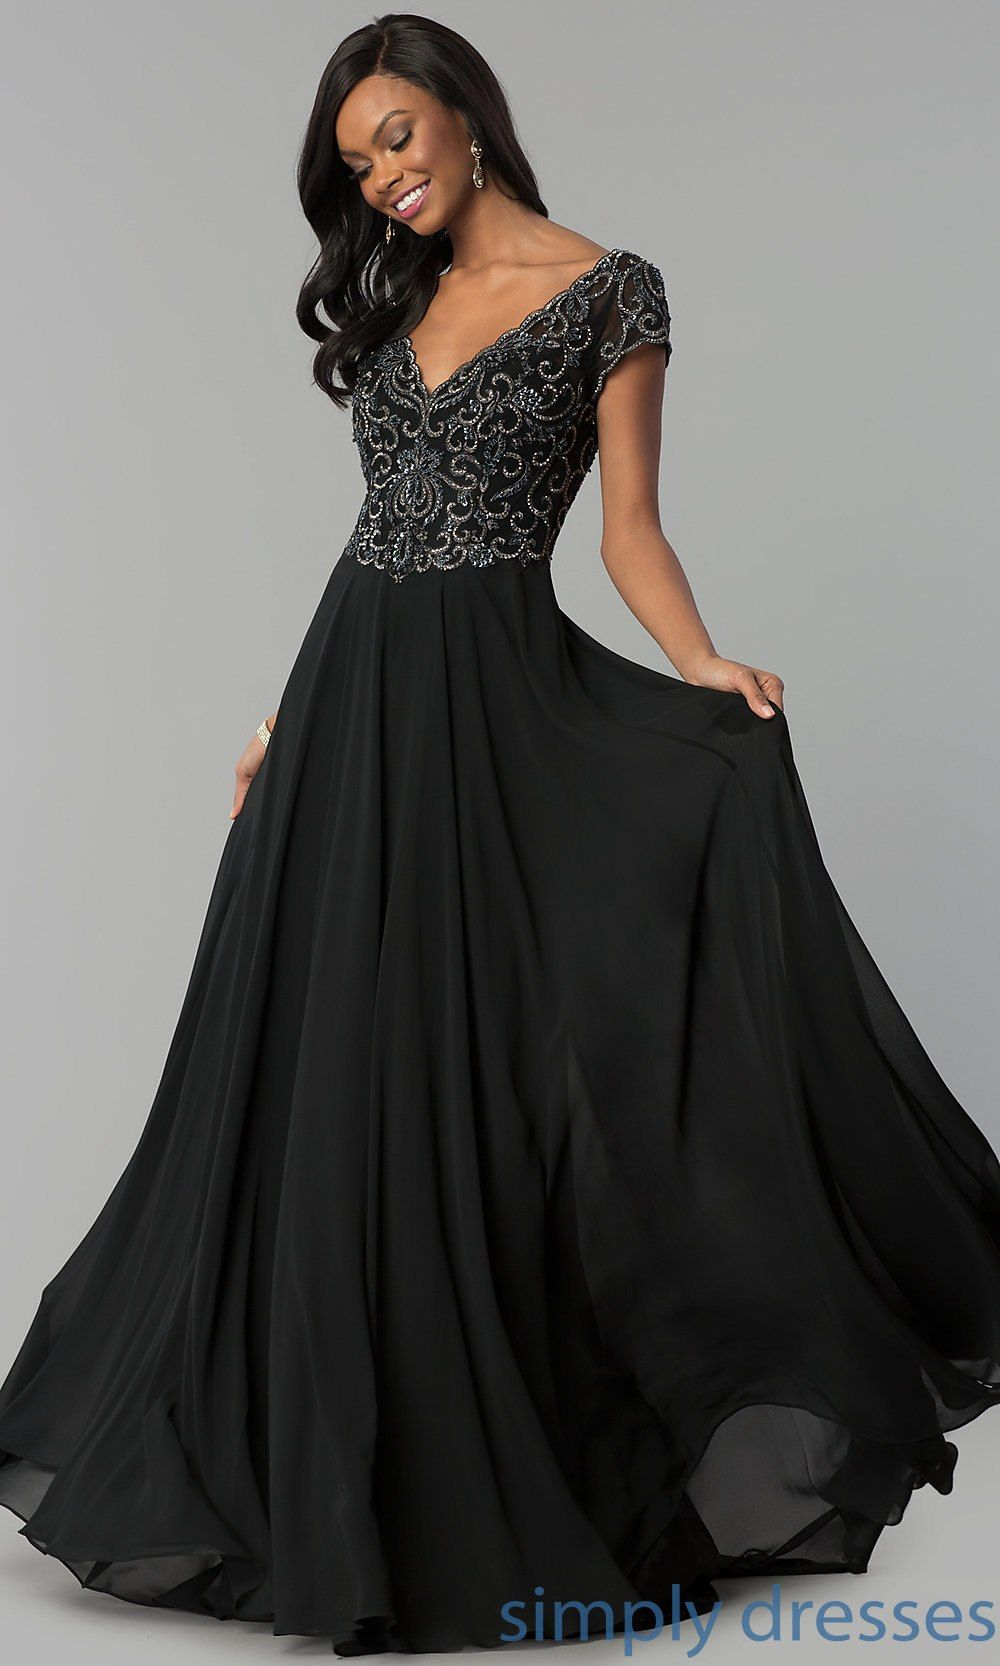 Shortsleeve long chiffon formal dress with beading in